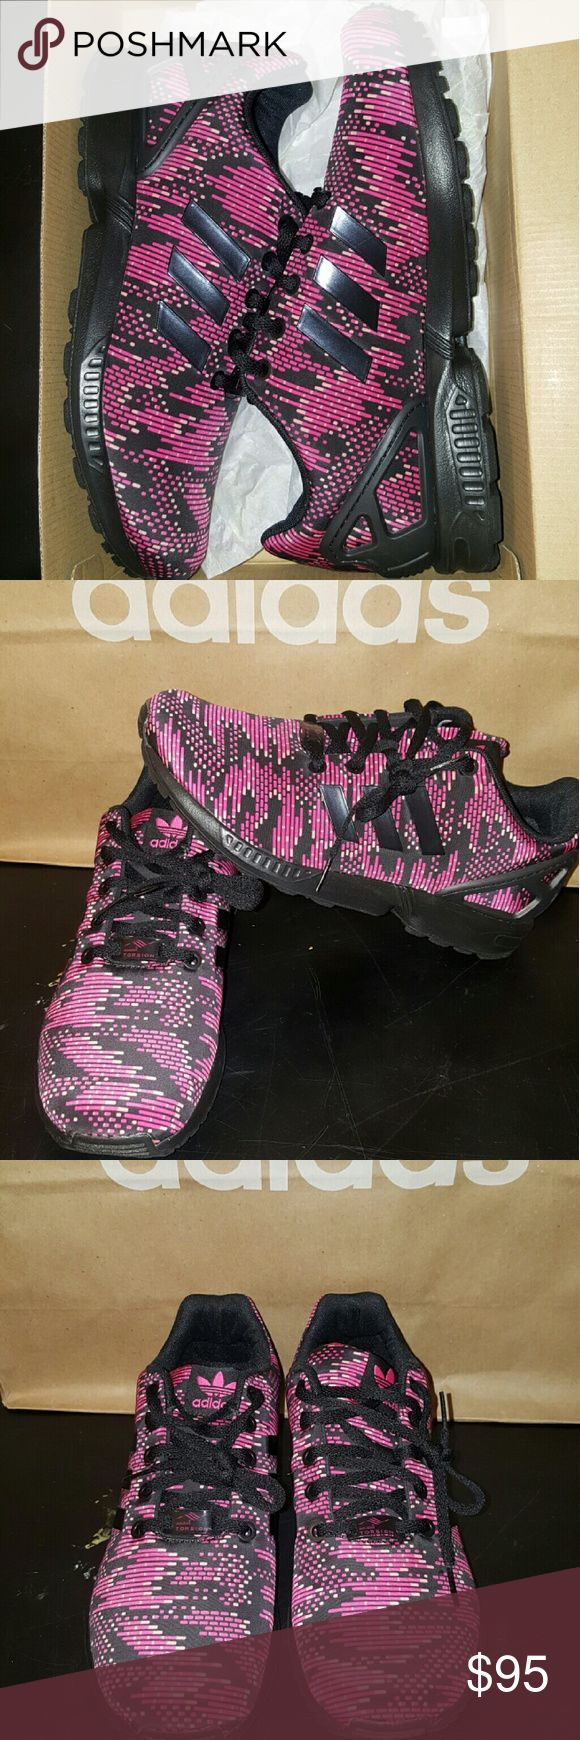 NIB Adidas ZX Flux K size 7 y/8.5 w New never worn Adidas ZX Flux K in hot pink/black with a digitized camouflage look.  Very cute and comfy in Ortholites.   Size 7 youth or 8.5 or 9 wome. Please no low balling.  Please use the offer button instead of comments for your offers.  Thank you Adidas  Shoes Athletic Shoes